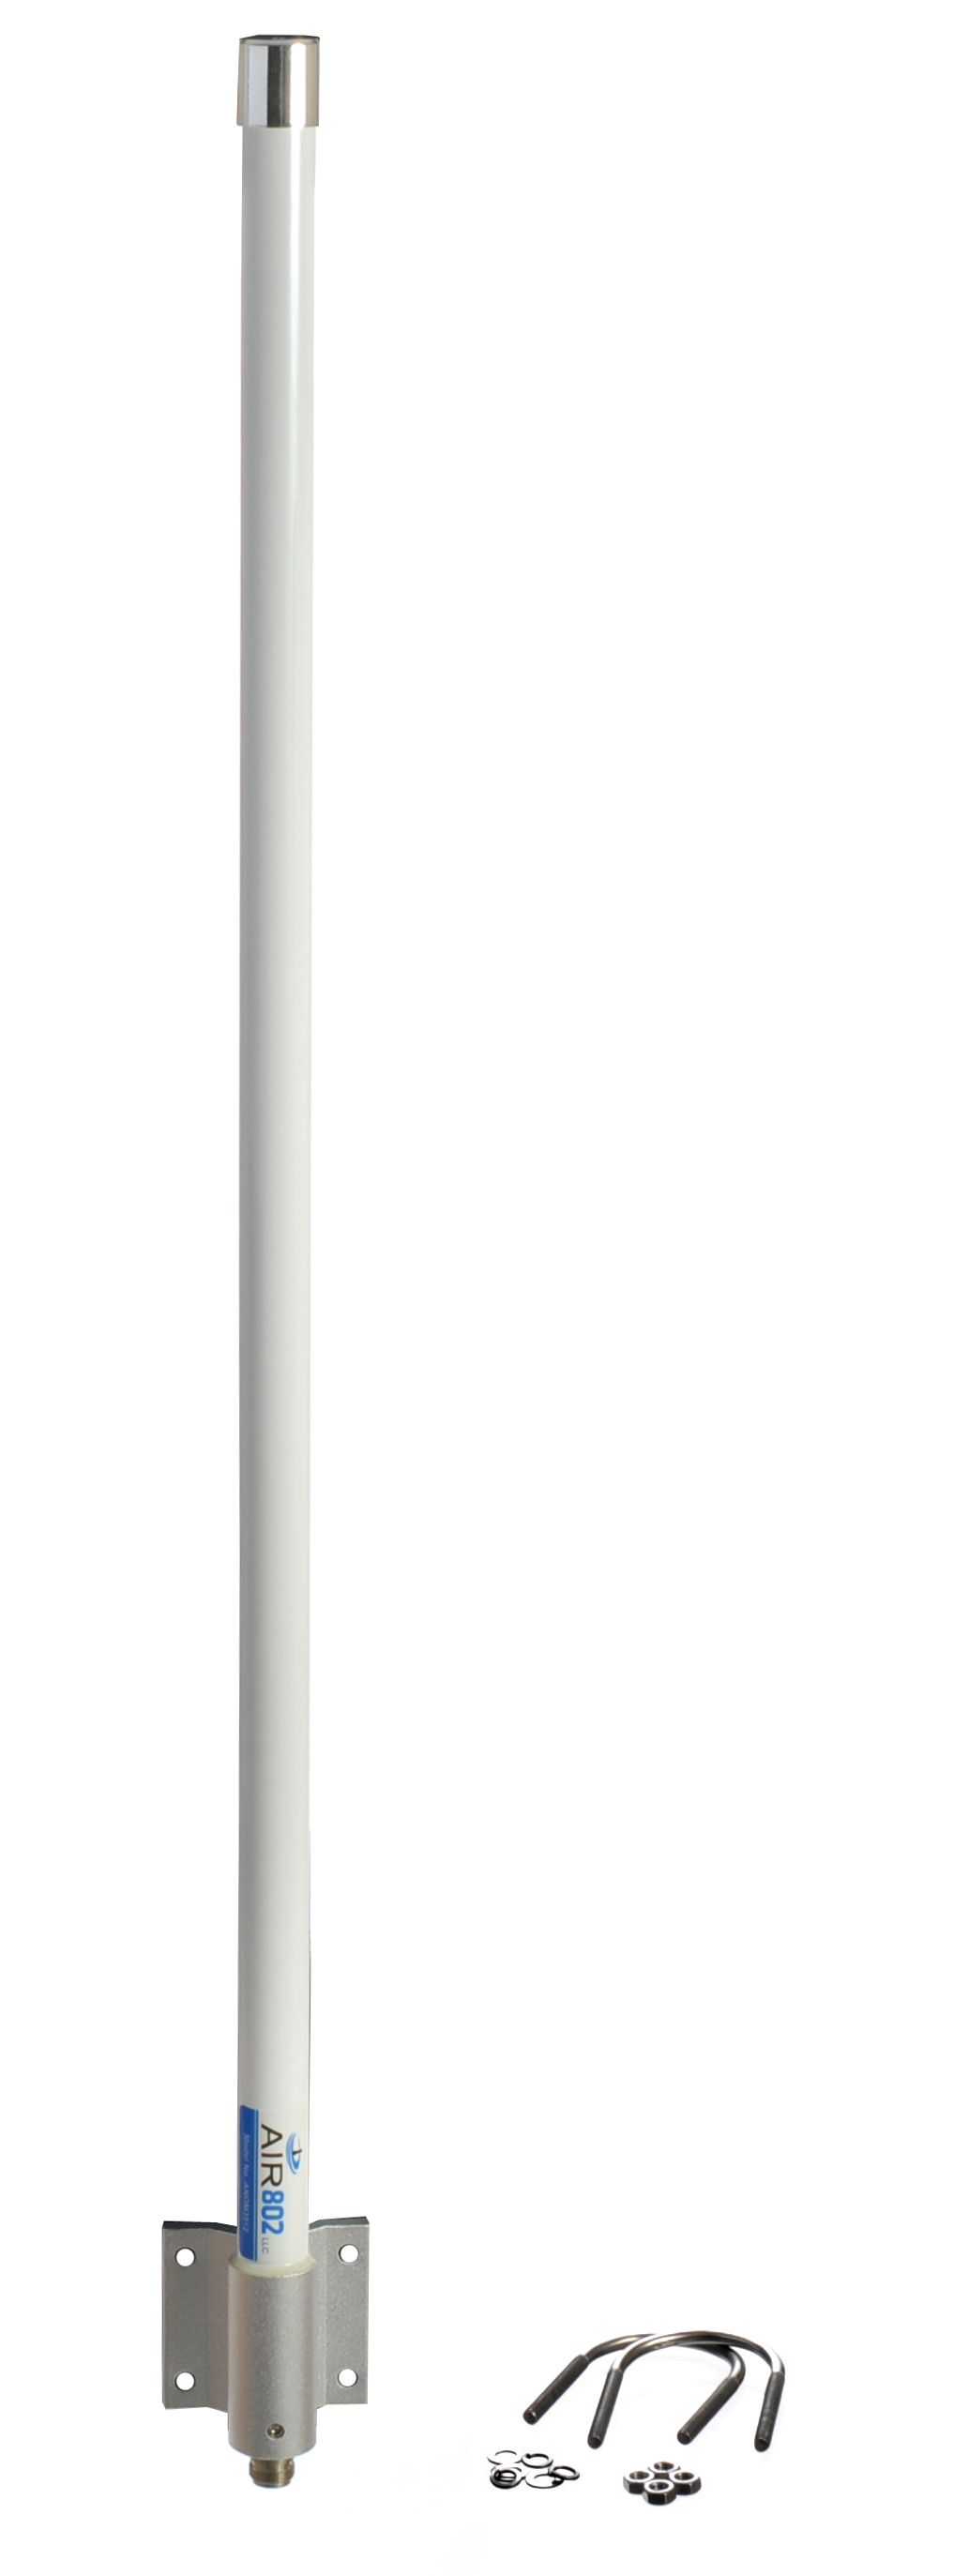 ANOM245X98 Dual-Band Outdoor Mast Mount WiFi Antenna with 2.4 and 5.1 to 5.8 GHz